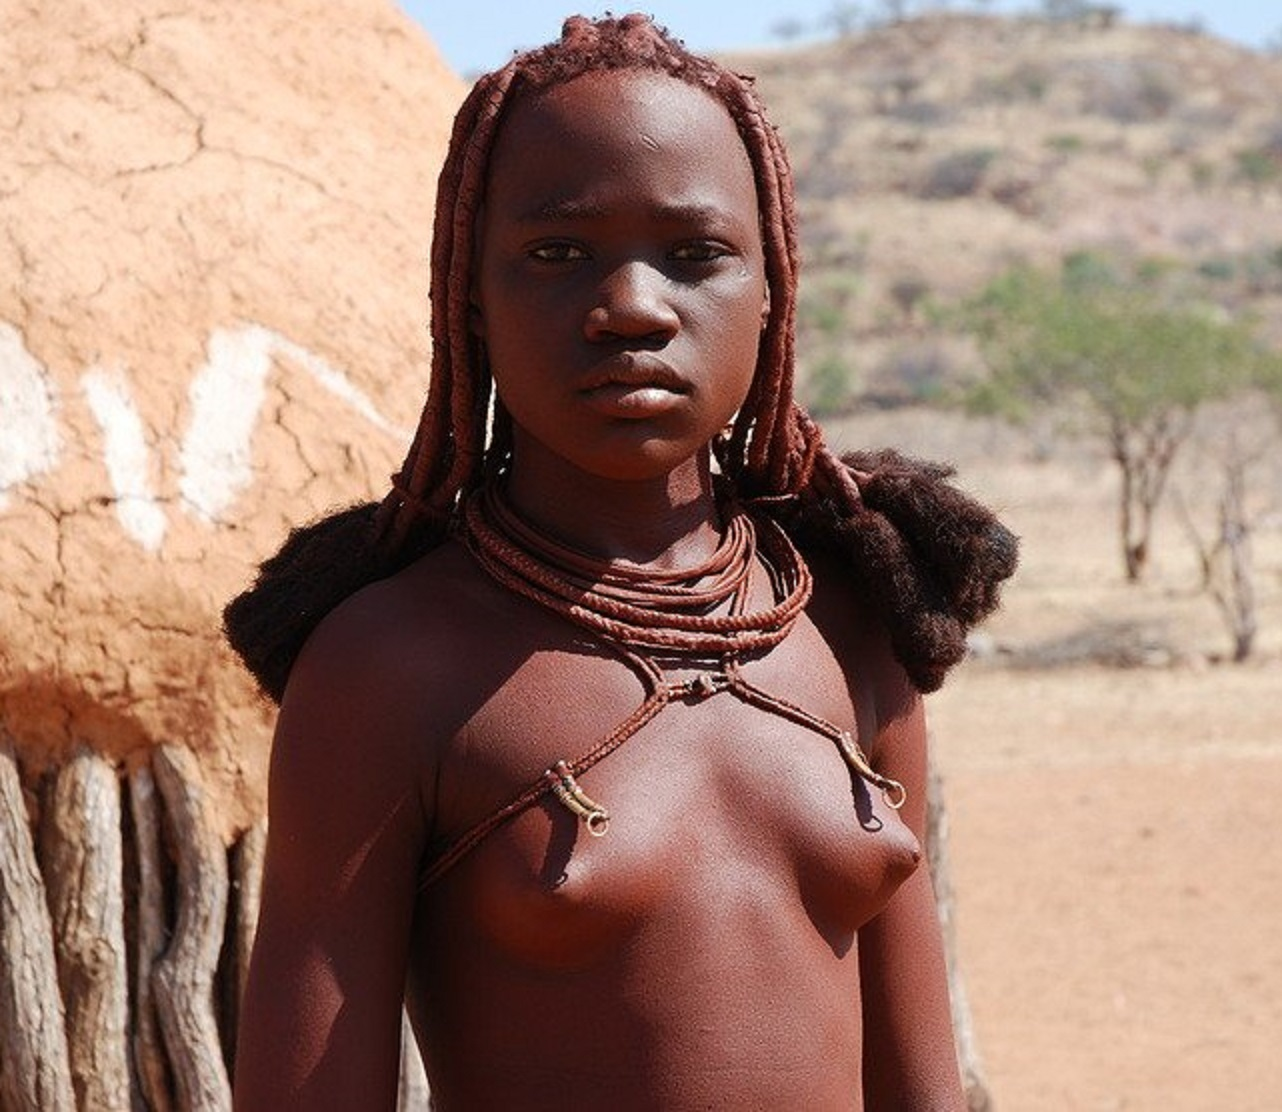 Hairy african tribal women pussy naked new girl wallpaper